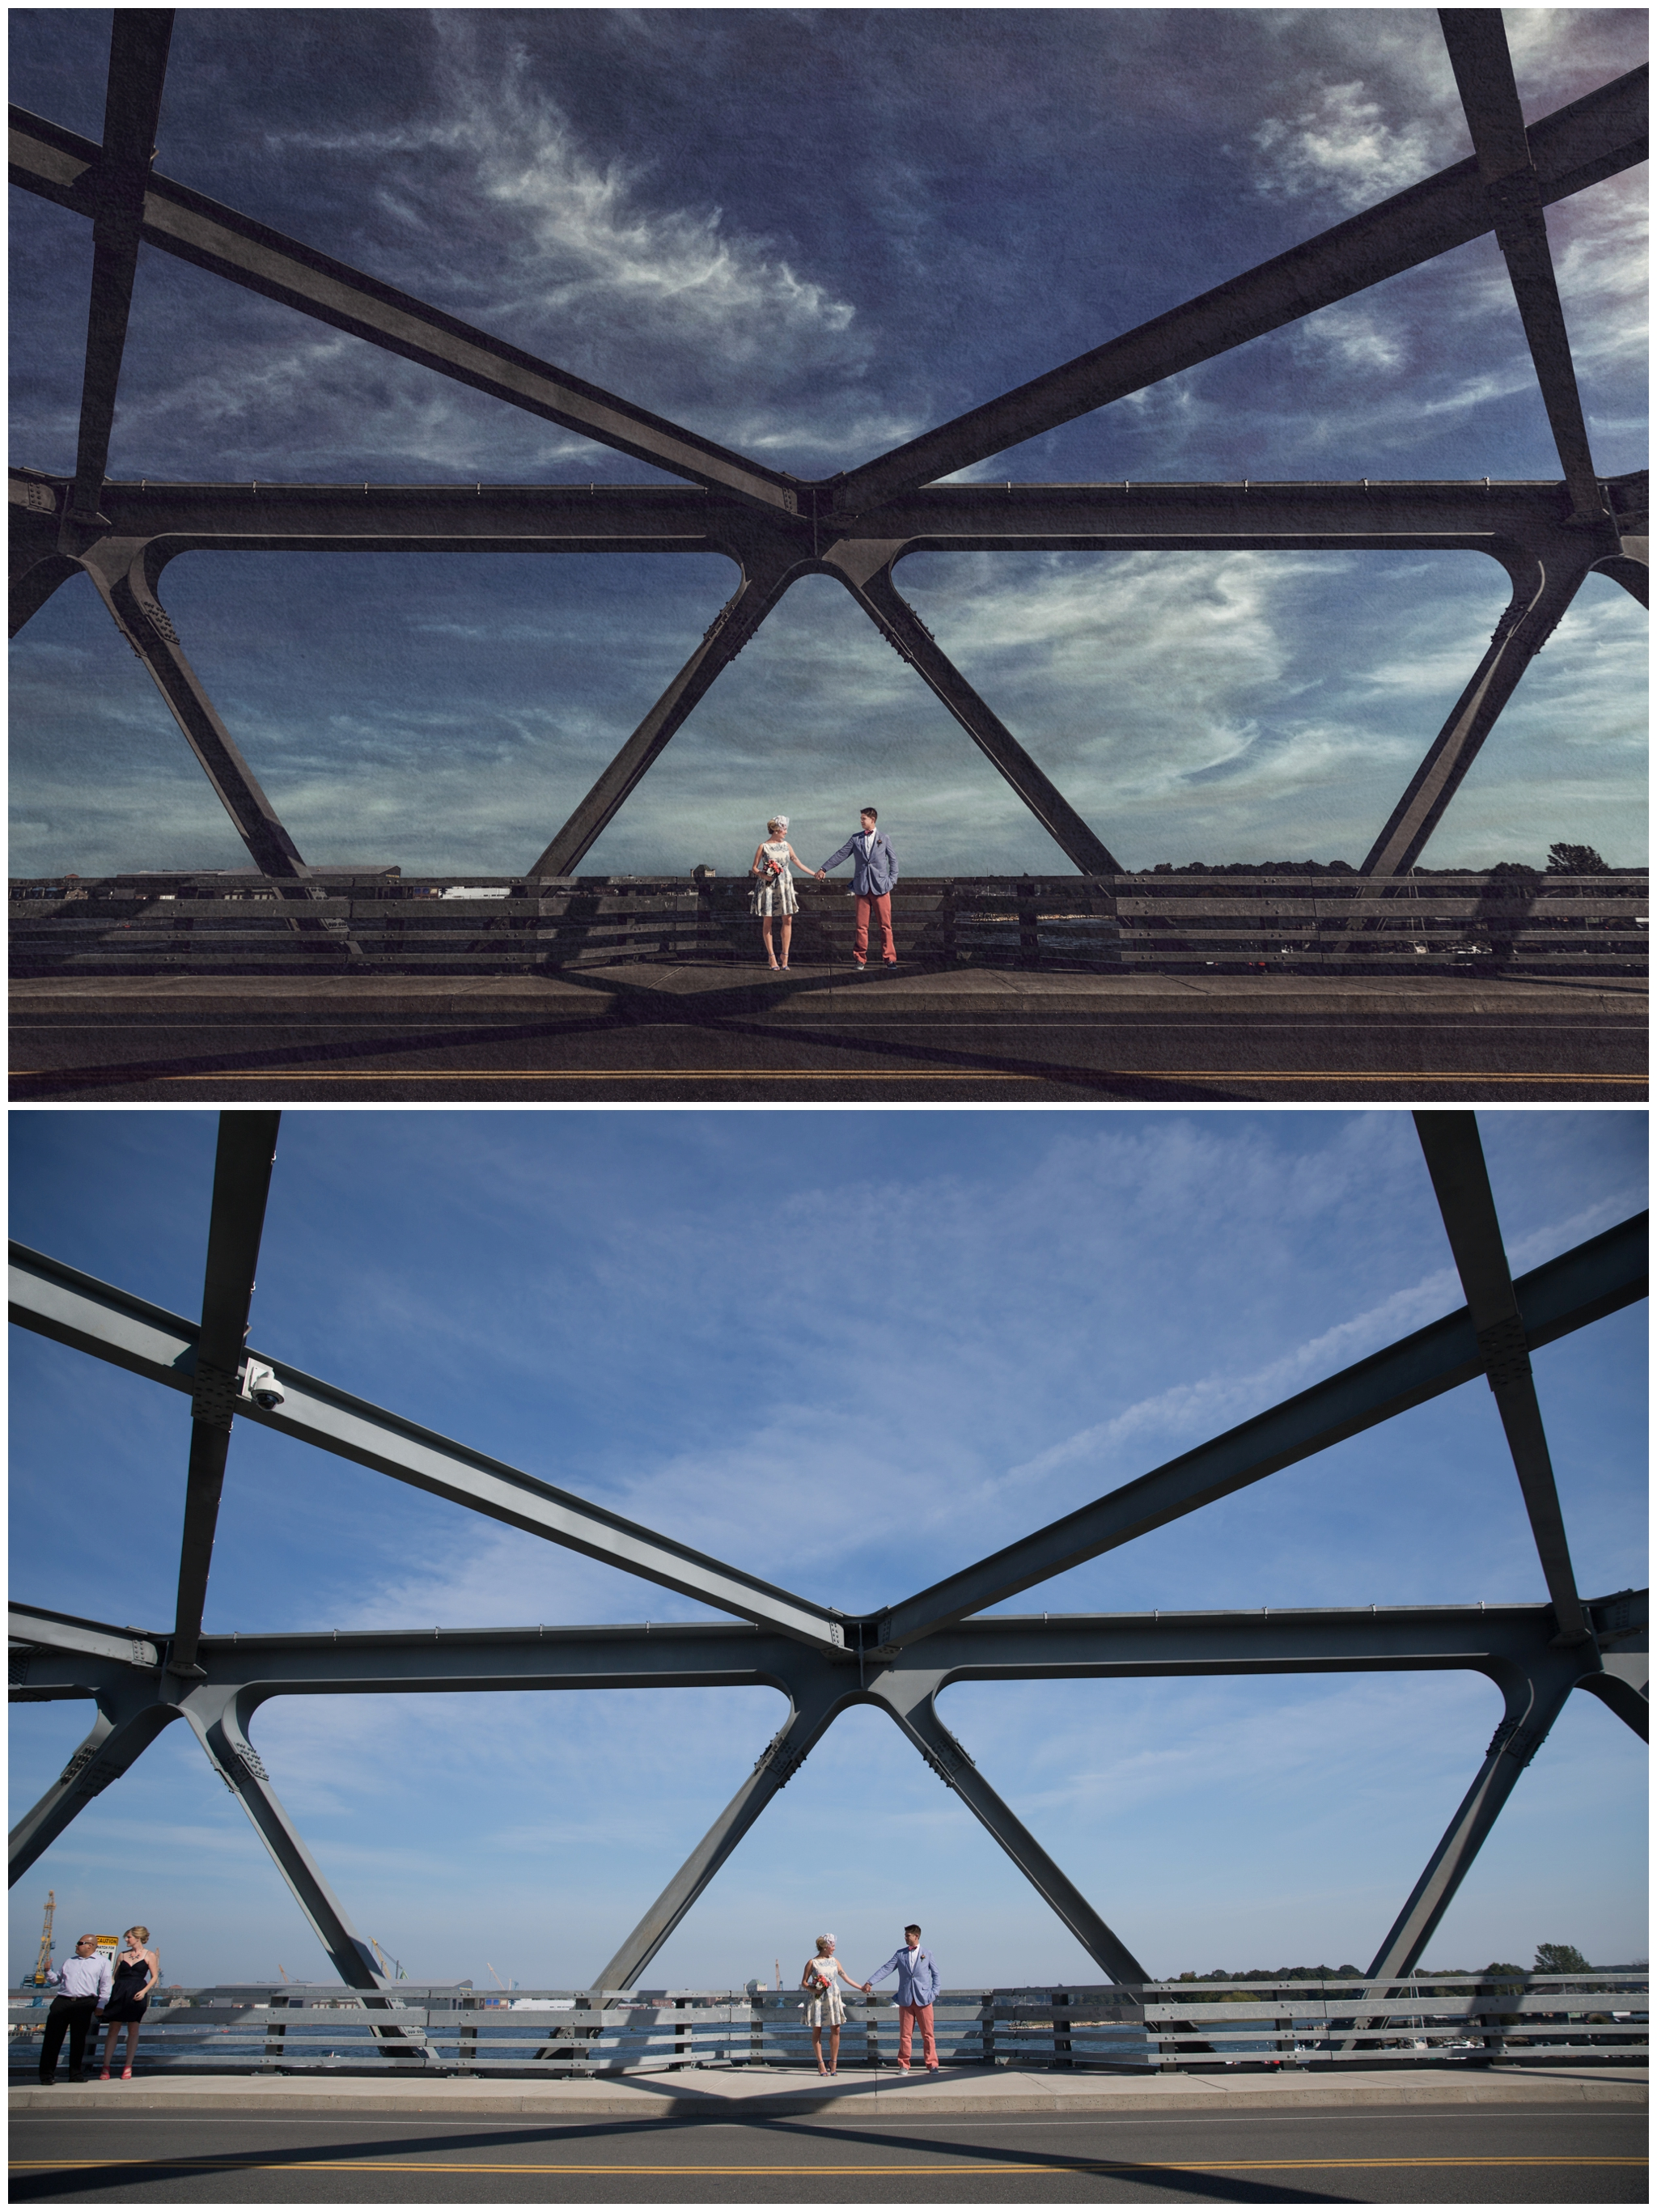 After (above) and before (below, straight out of camera). This edit included an authentic sky swap, removal of distracting elements in the background, tonal adjustments, and intensive dodging and burning.